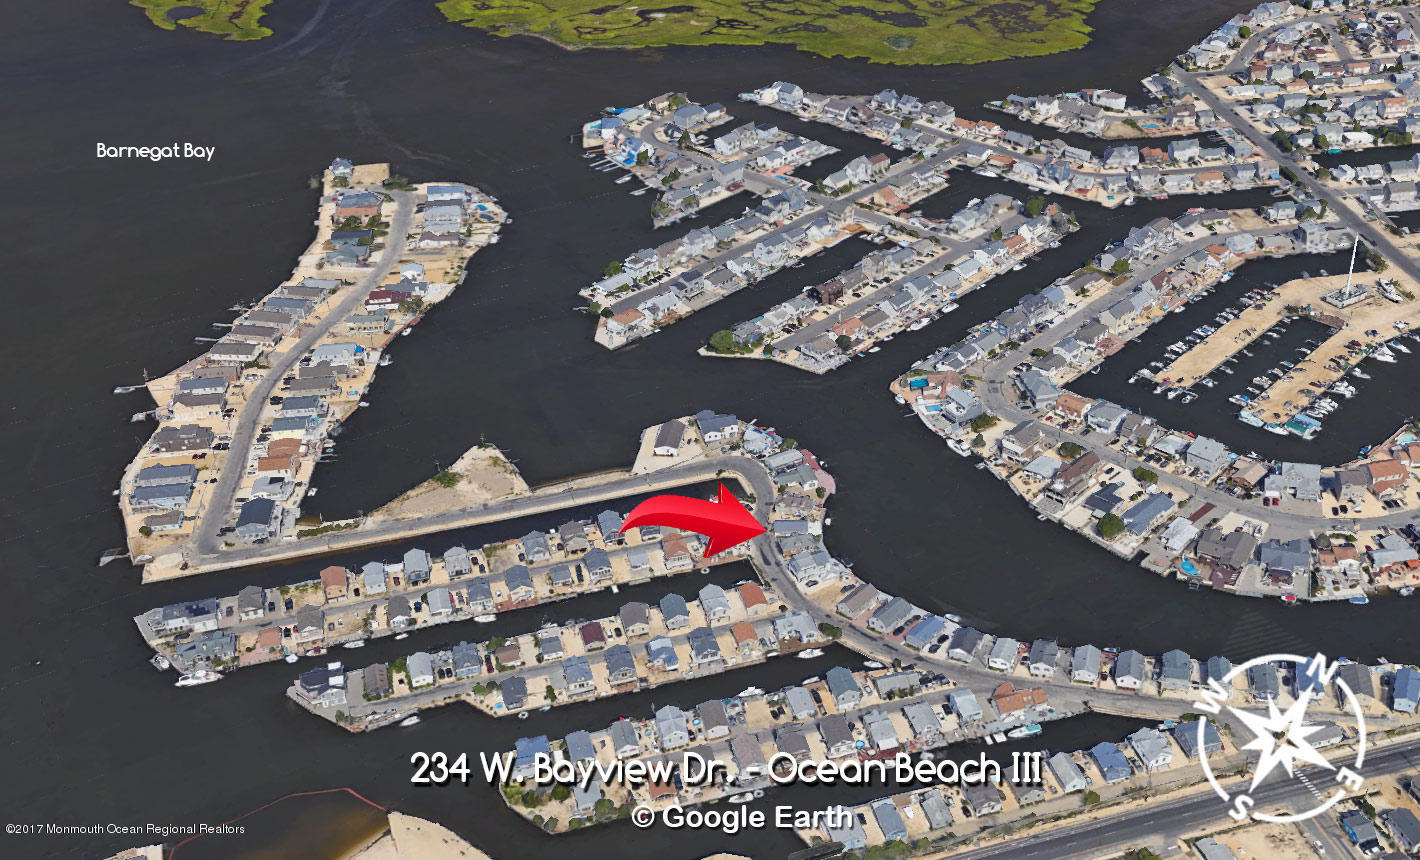 234 W Bayview Drive - Picture 11